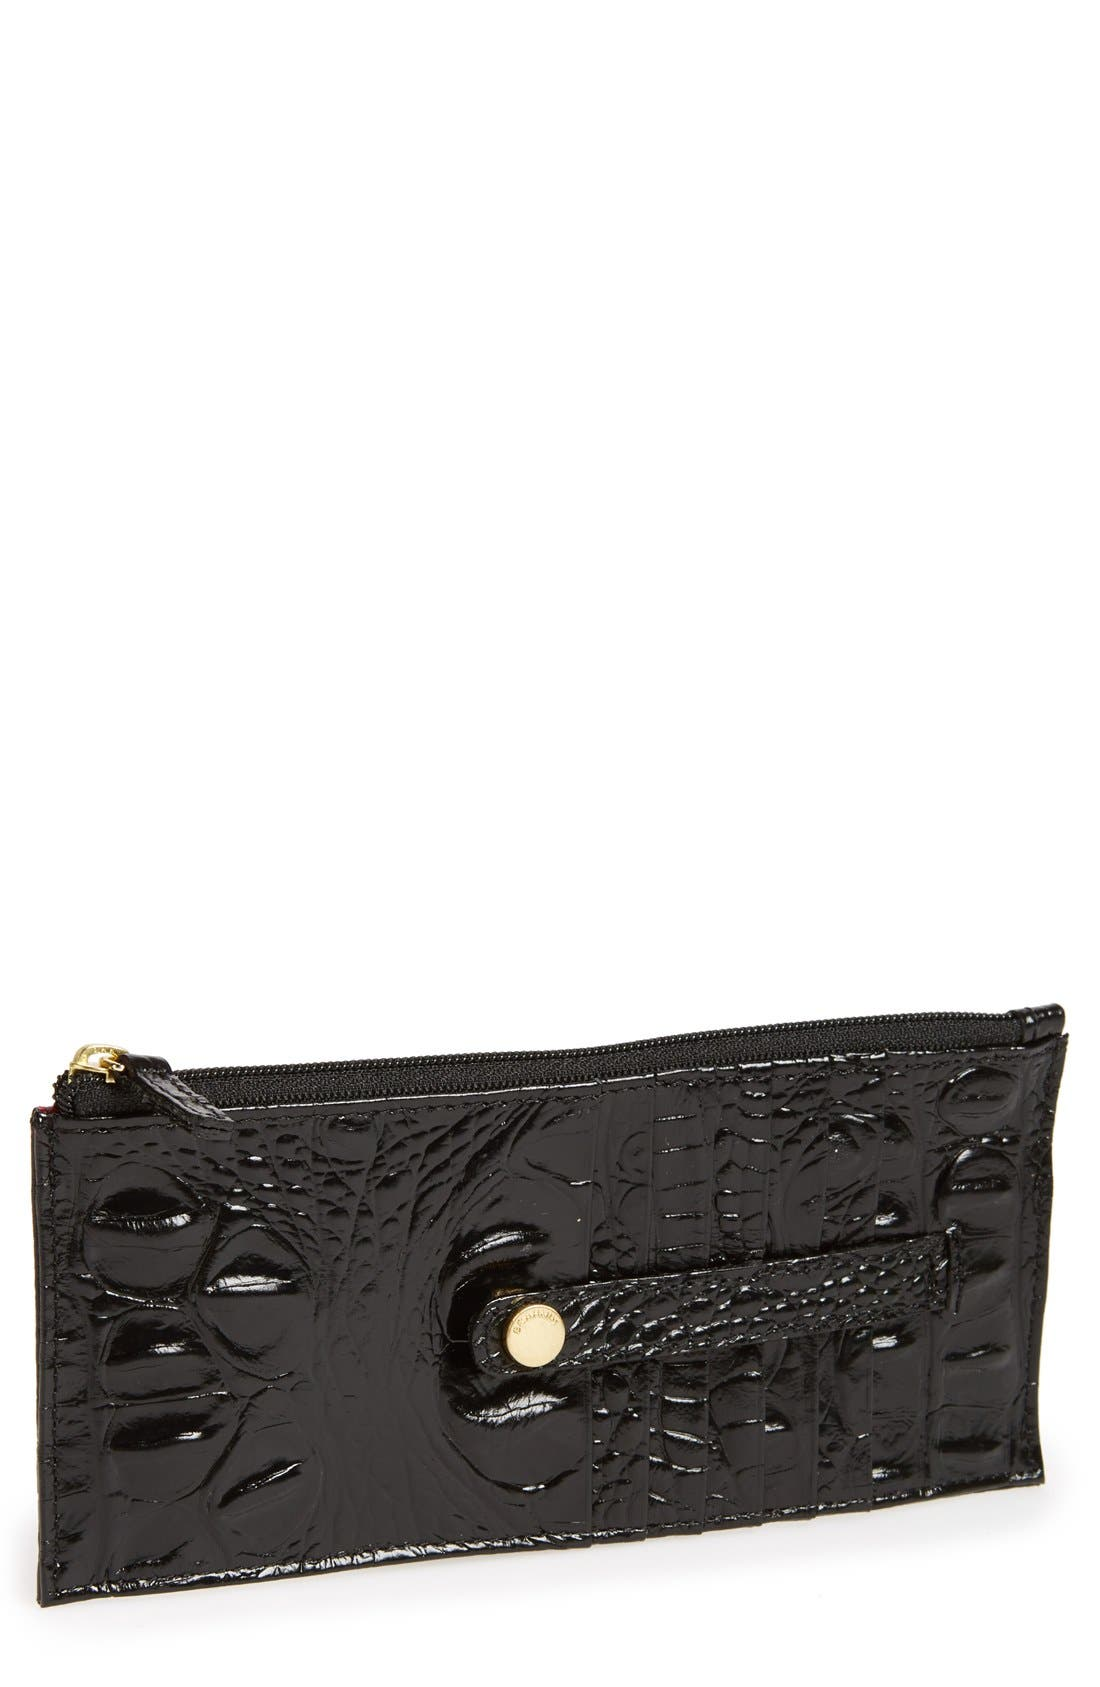 'Melbourne' Credit Card Wallet,                         Main,                         color, Black